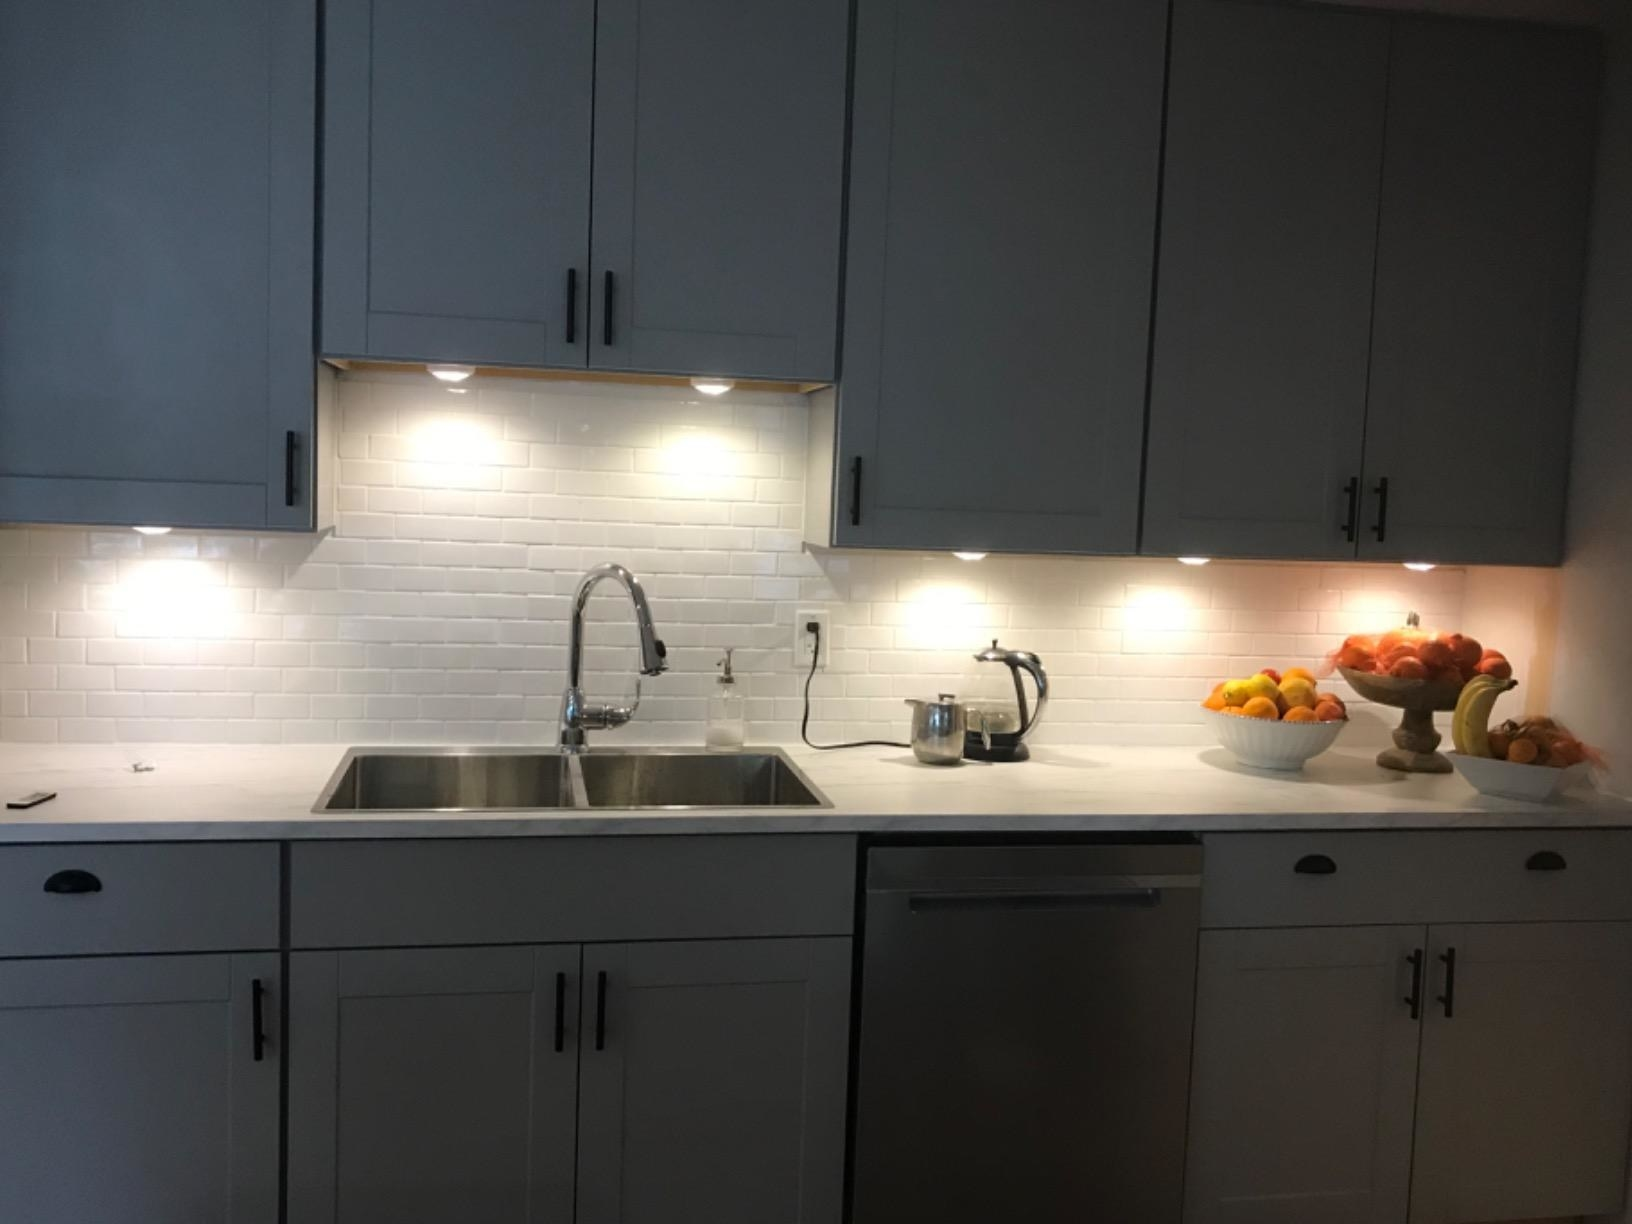 reviewer photo of a gray kitchen with multiple puck lights lighting up the counter underneath the cabinets